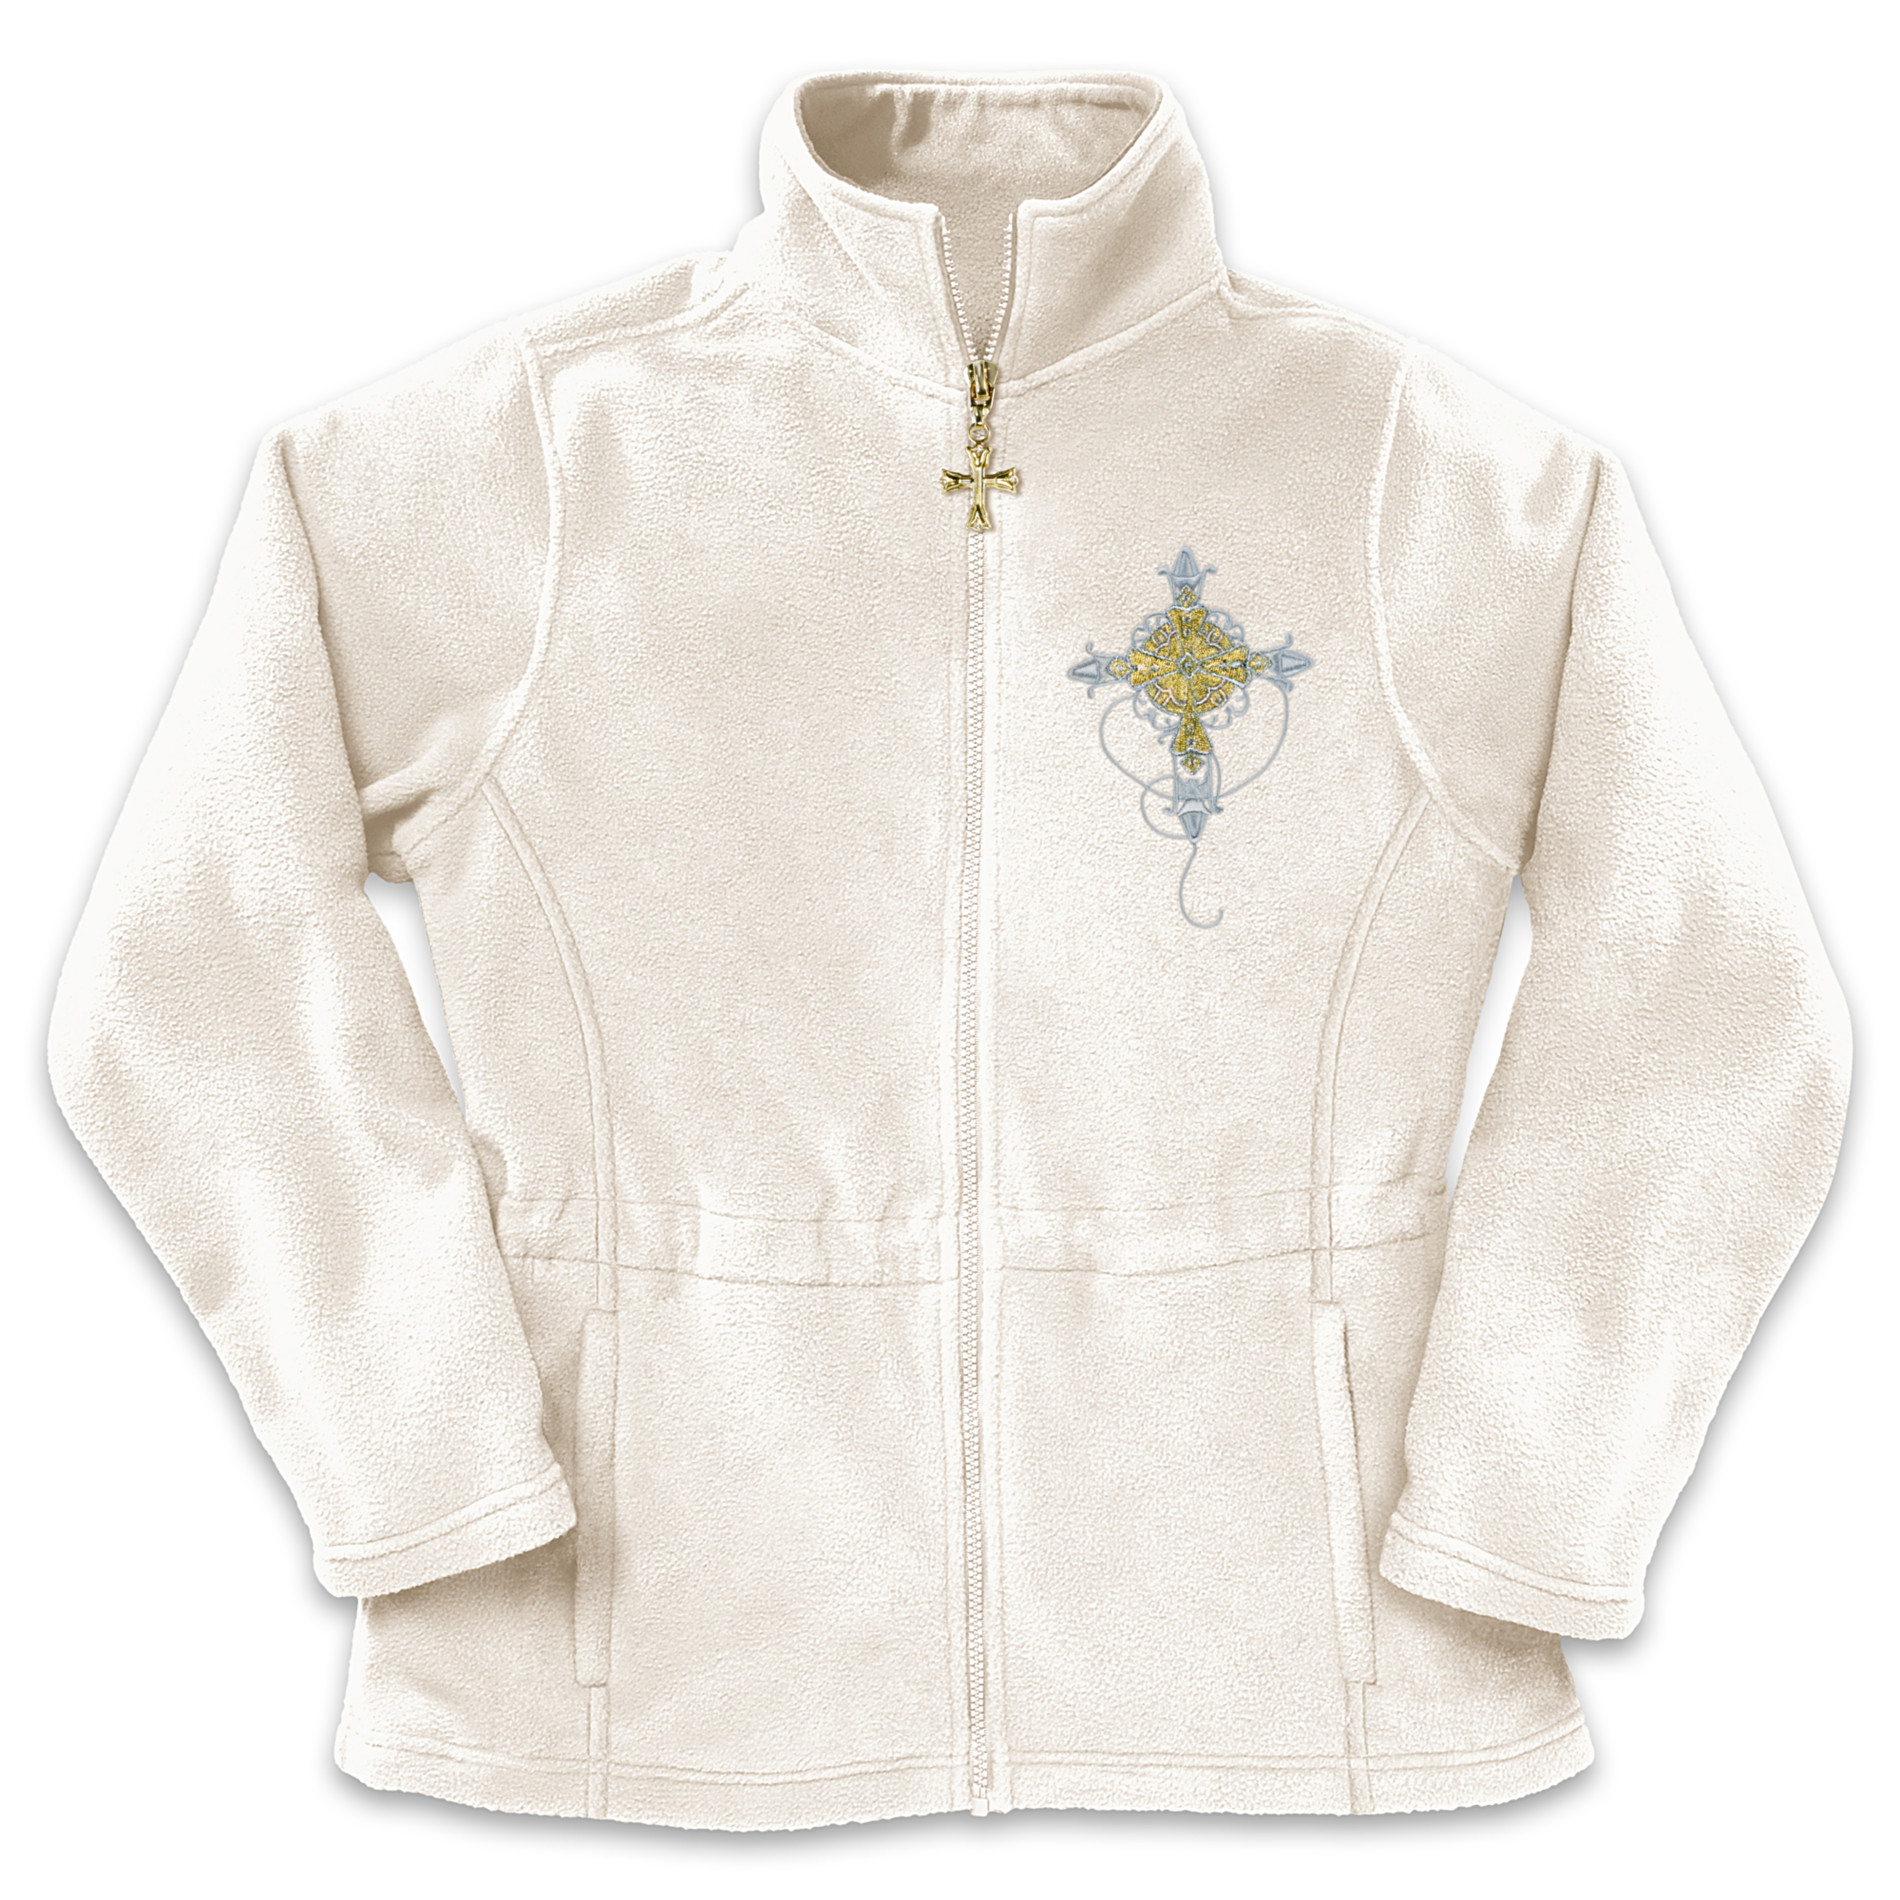 "The Bradford Exchange ""Reflections Of Faith"" Women's Fleece Jacket at Sears.com"